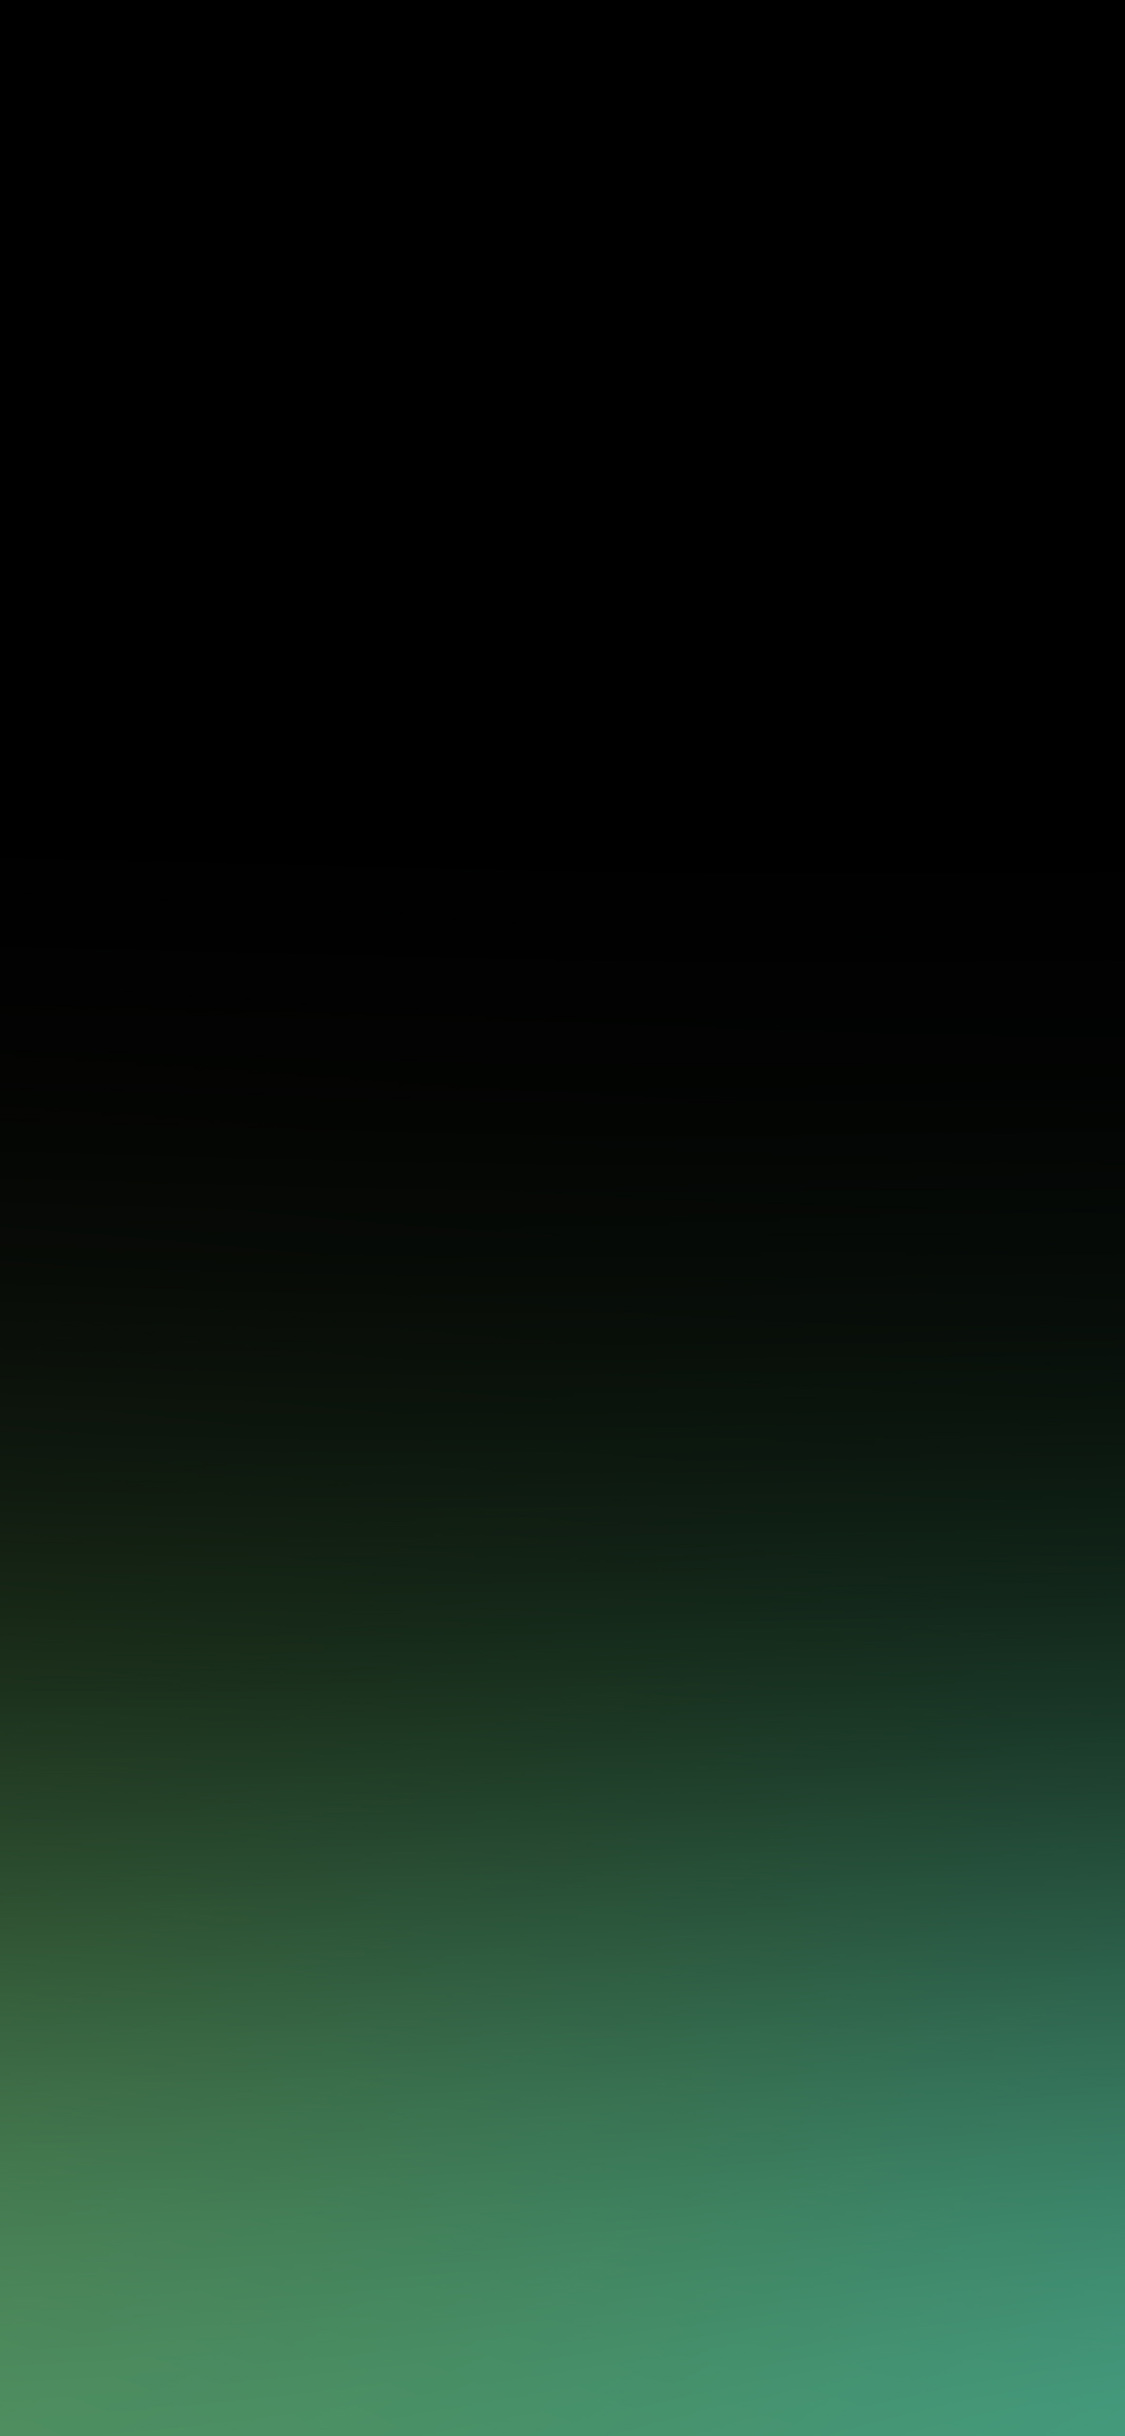 iPhoneXpapers.com-Apple-iPhone-wallpaper-sf59-dark-under-grass-green-gradation-blur